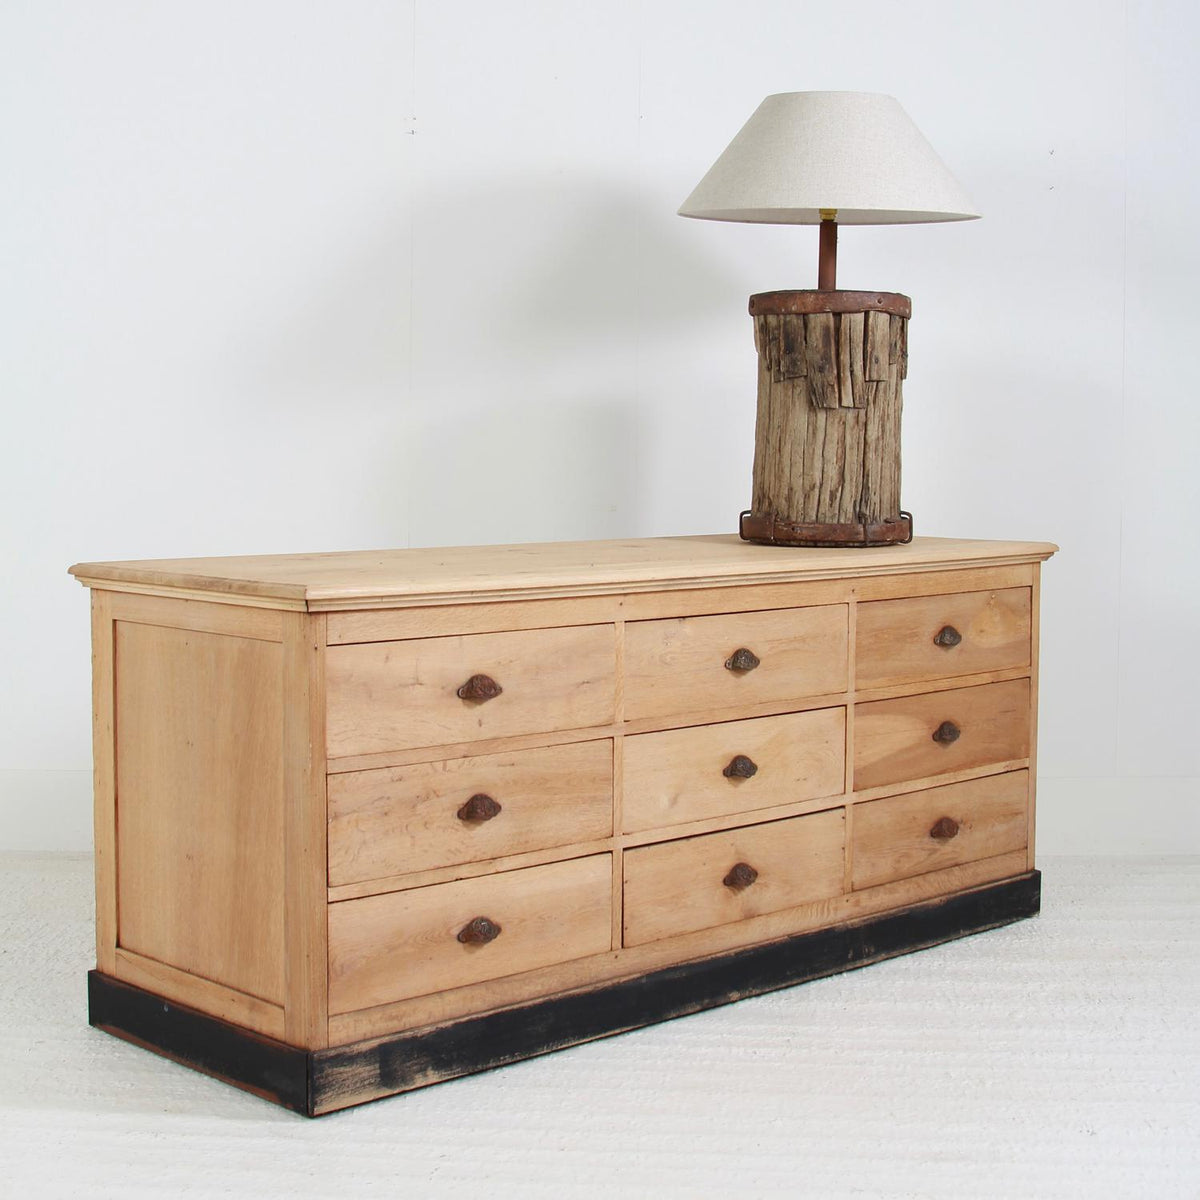 Outstanding French 20thC Bleached Oak Bank of Drawers